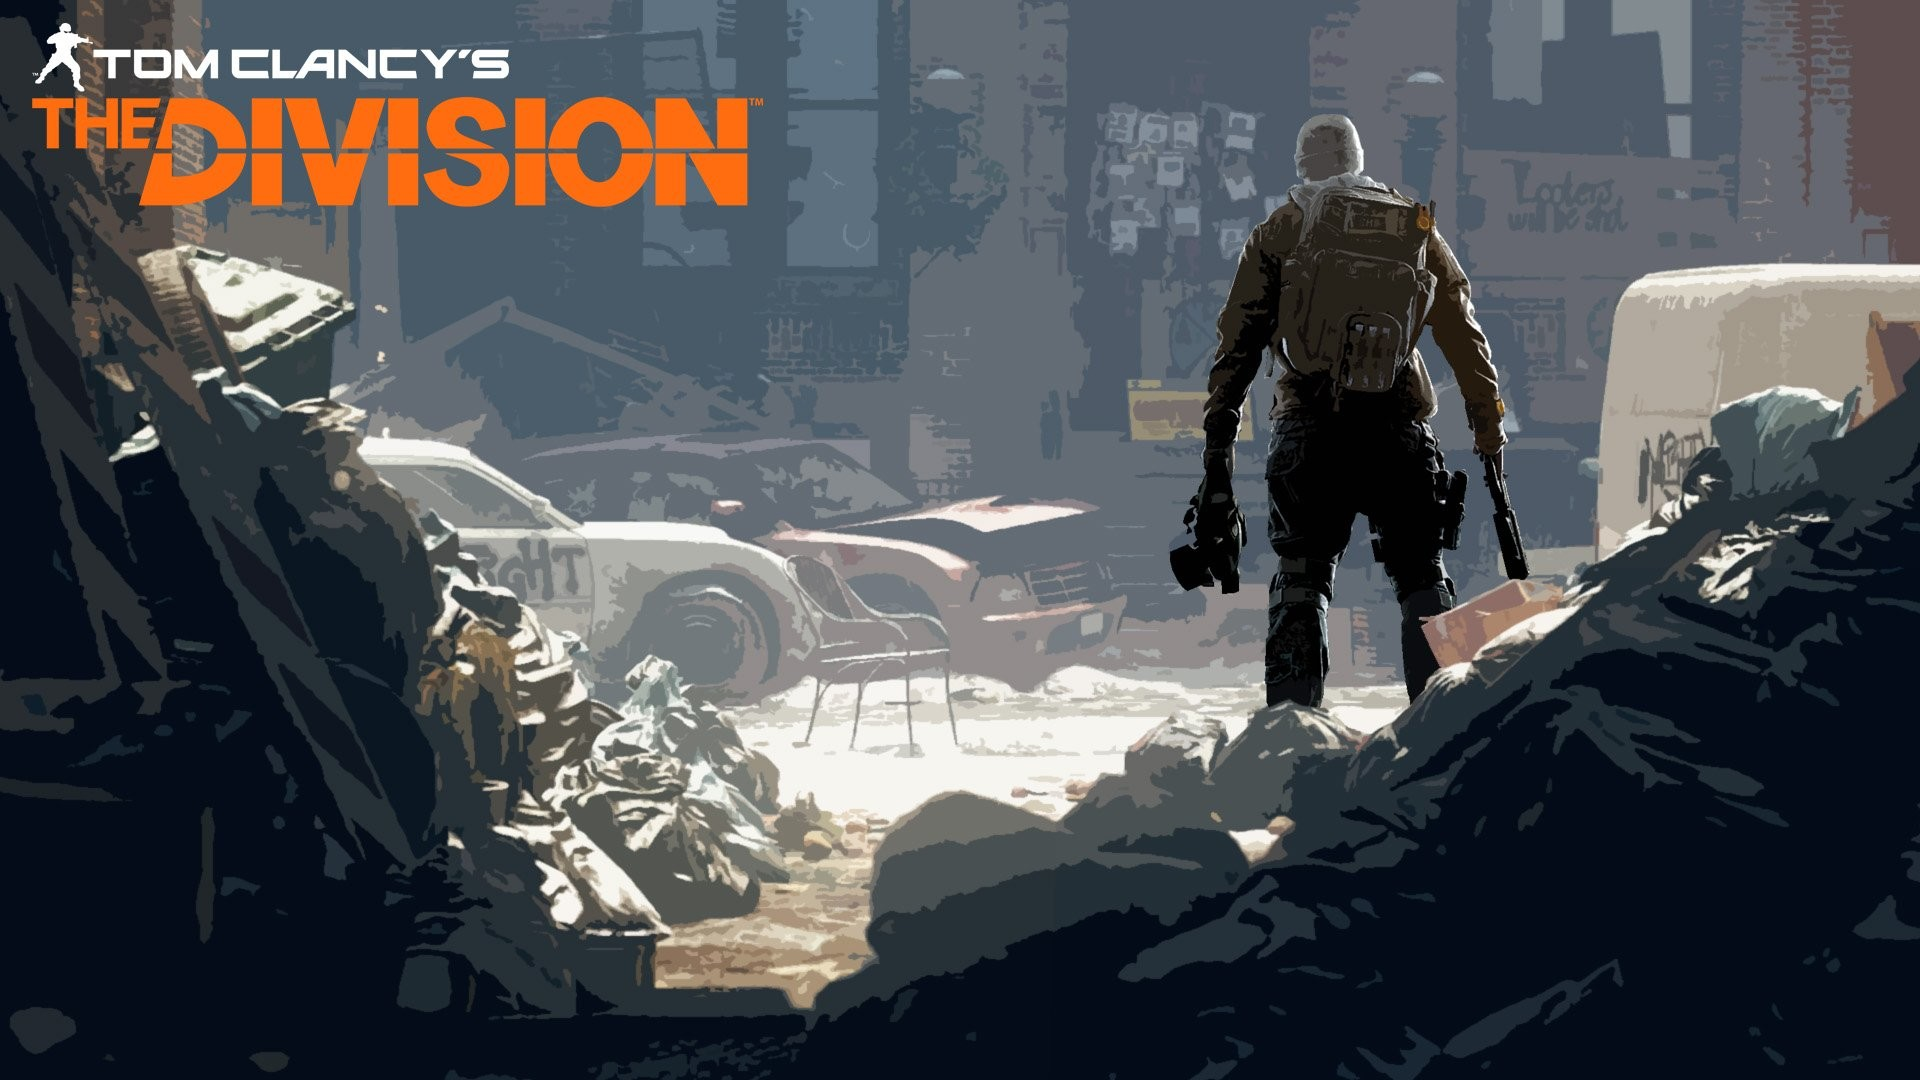 Moto X Video Game/Tom Clancys The Division Wallpaper ID: 1920×1080 Tom